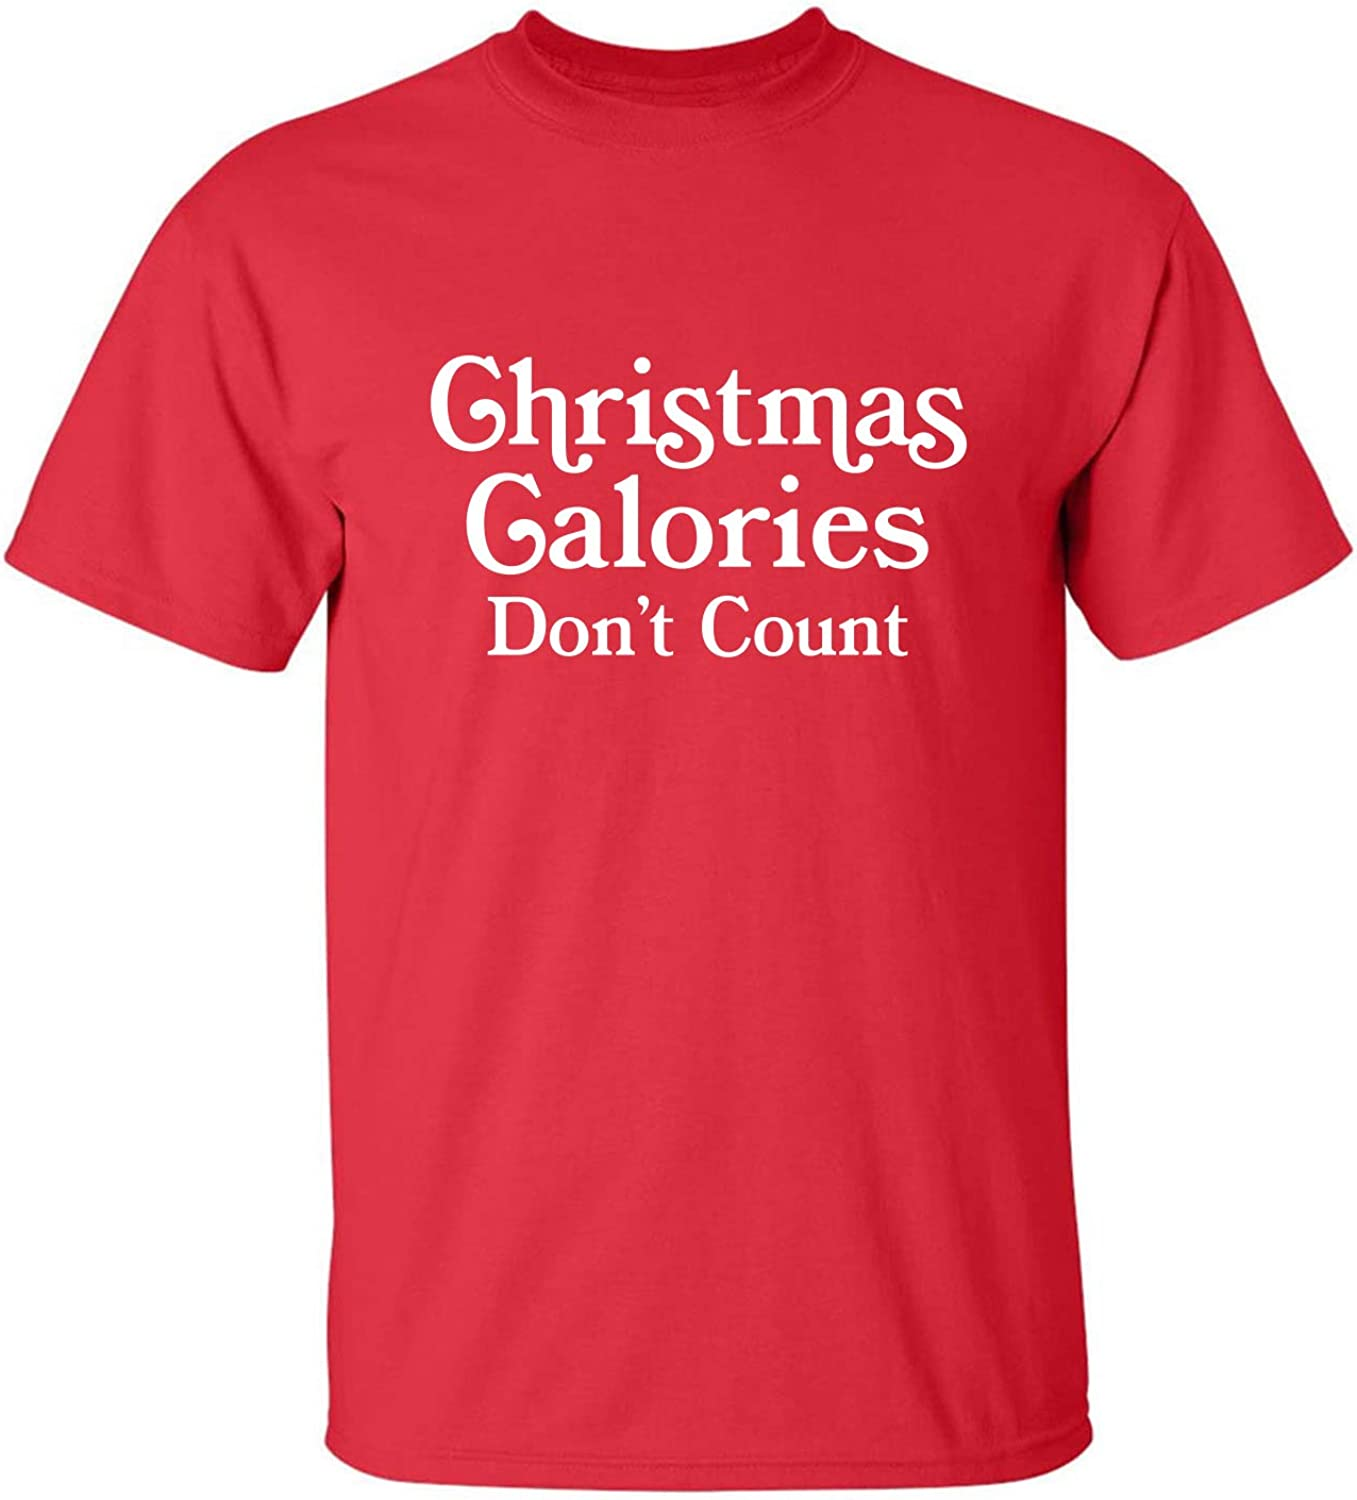 Christmas Calories Don't Count Adult T-Shirt in Red - XXXXX-Large